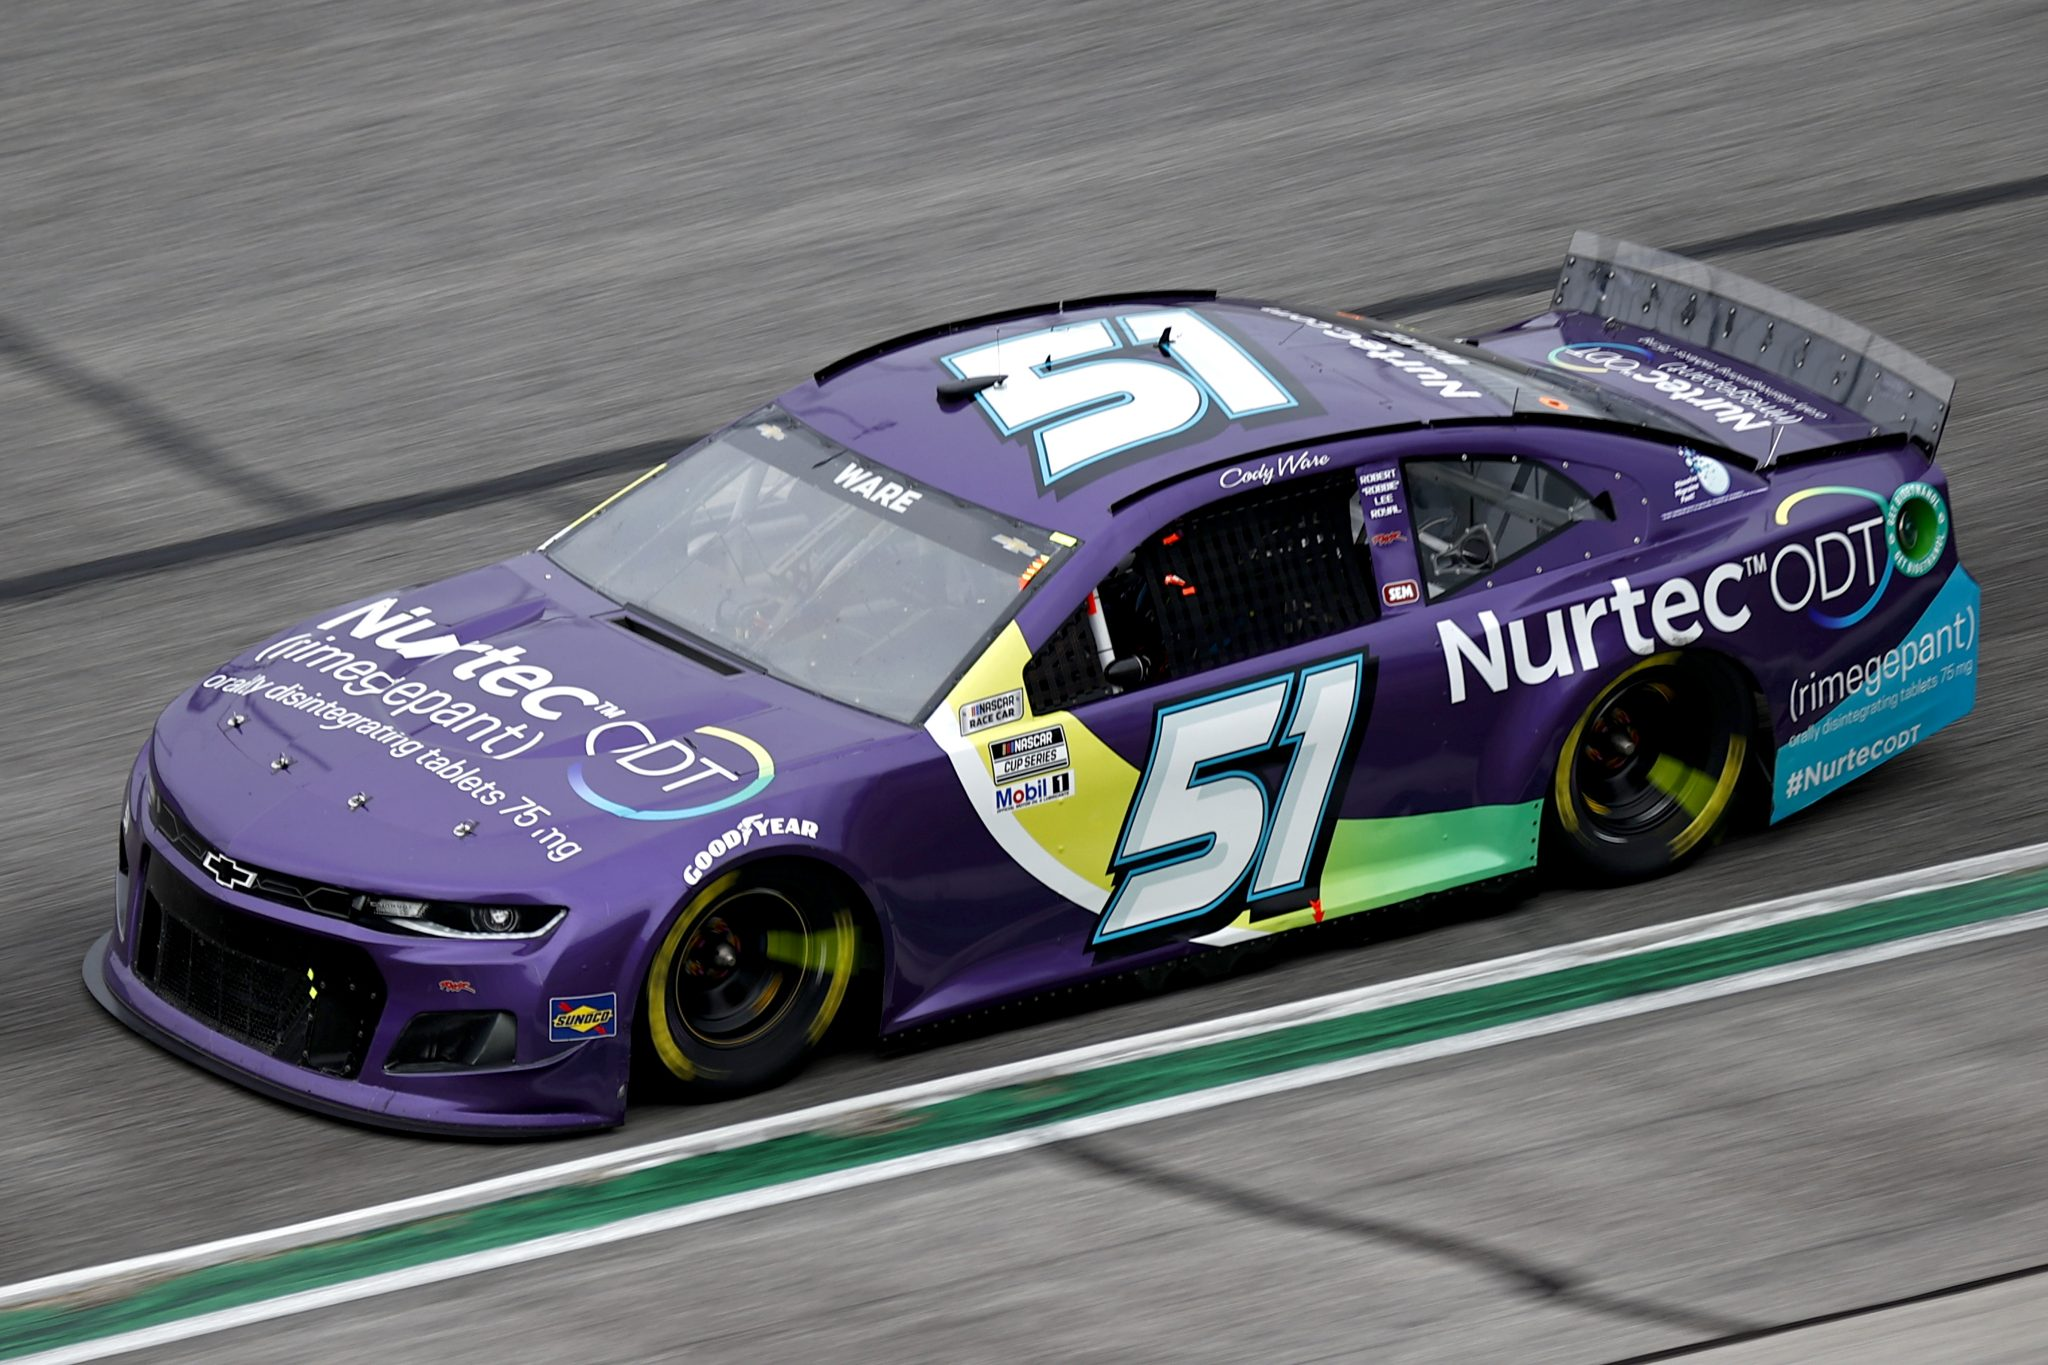 HAMPTON, GEORGIA - JULY 11: Cody Ware, driver of the #51 Nurtec ODT Chevrolet, drives during the NASCAR Cup Series Quaker State 400 presented by Walmart at Atlanta Motor Speedway on July 11, 2021 in Hampton, Georgia. (Photo by Jared C. Tilton/Getty Images) | Getty Images